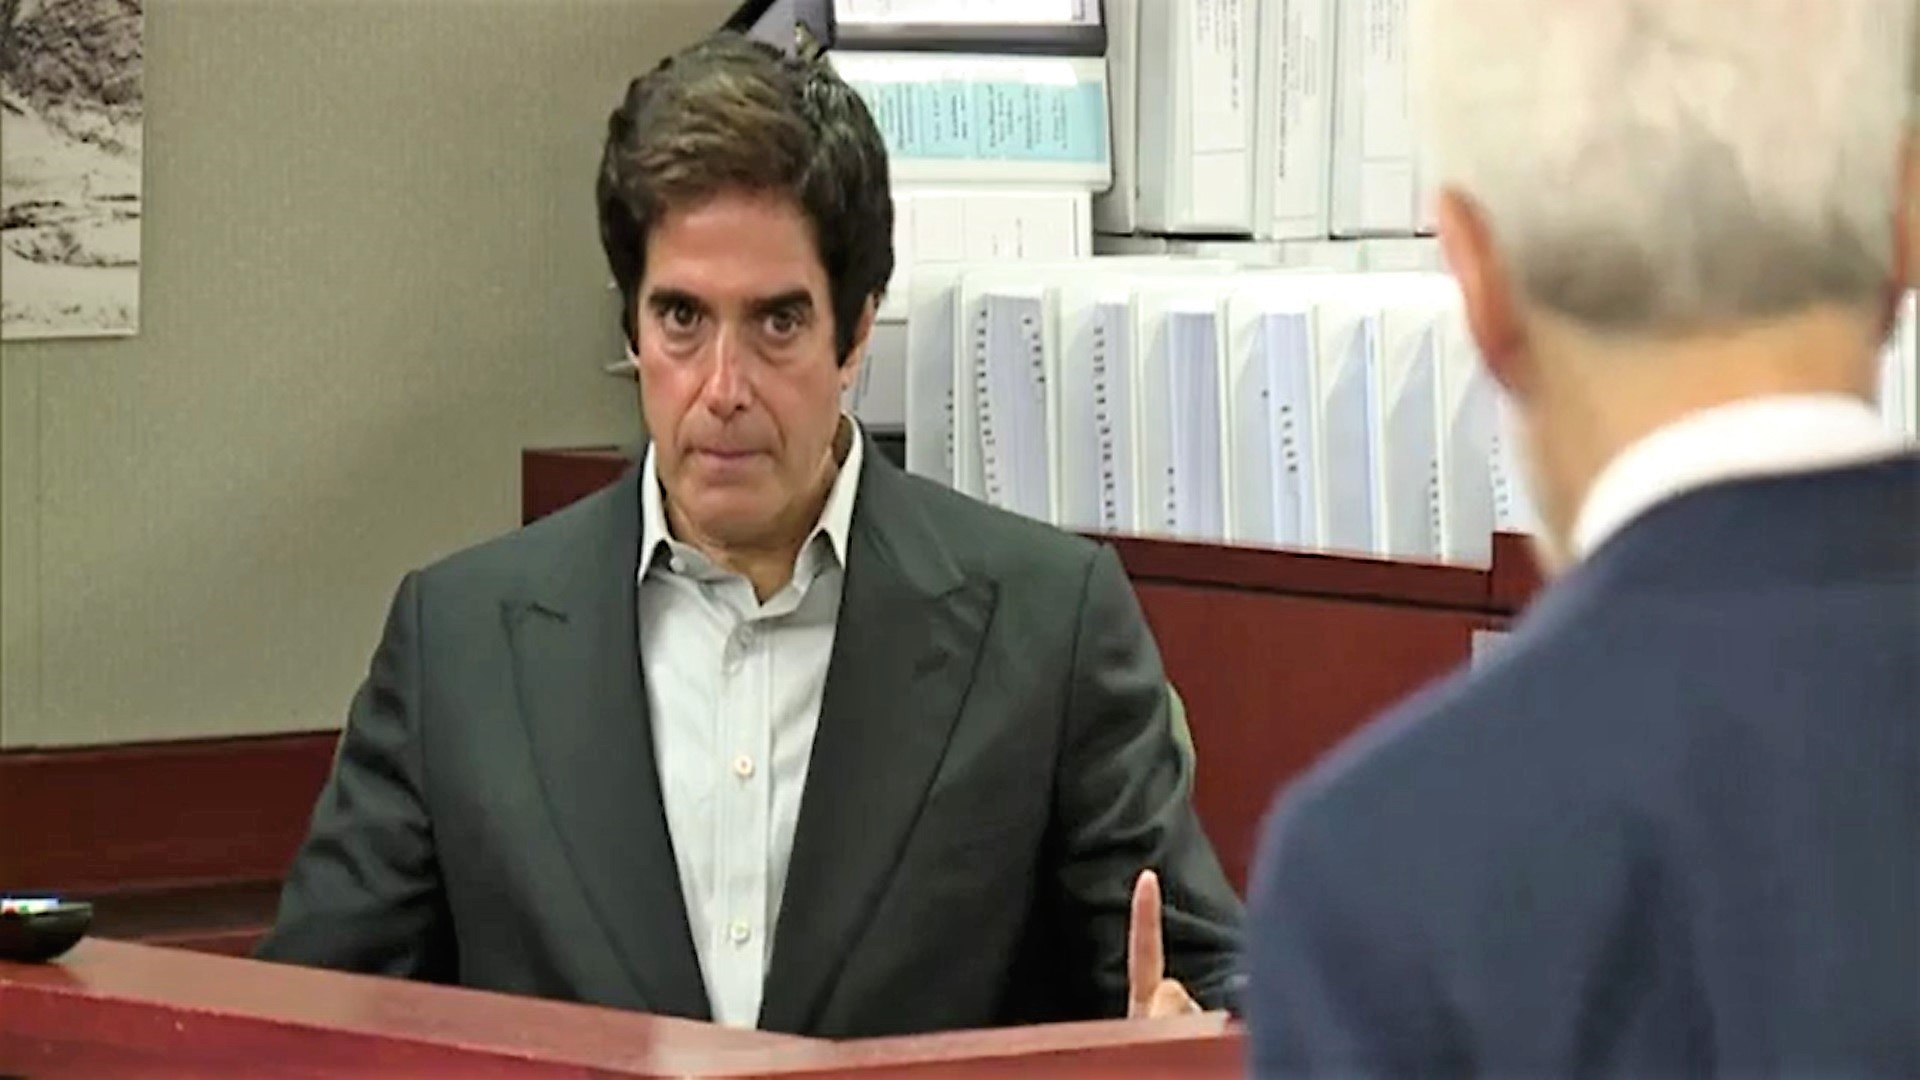 Magician David Copperfield, Witness, Trial, Civil Case, Court, Testify, Testifies